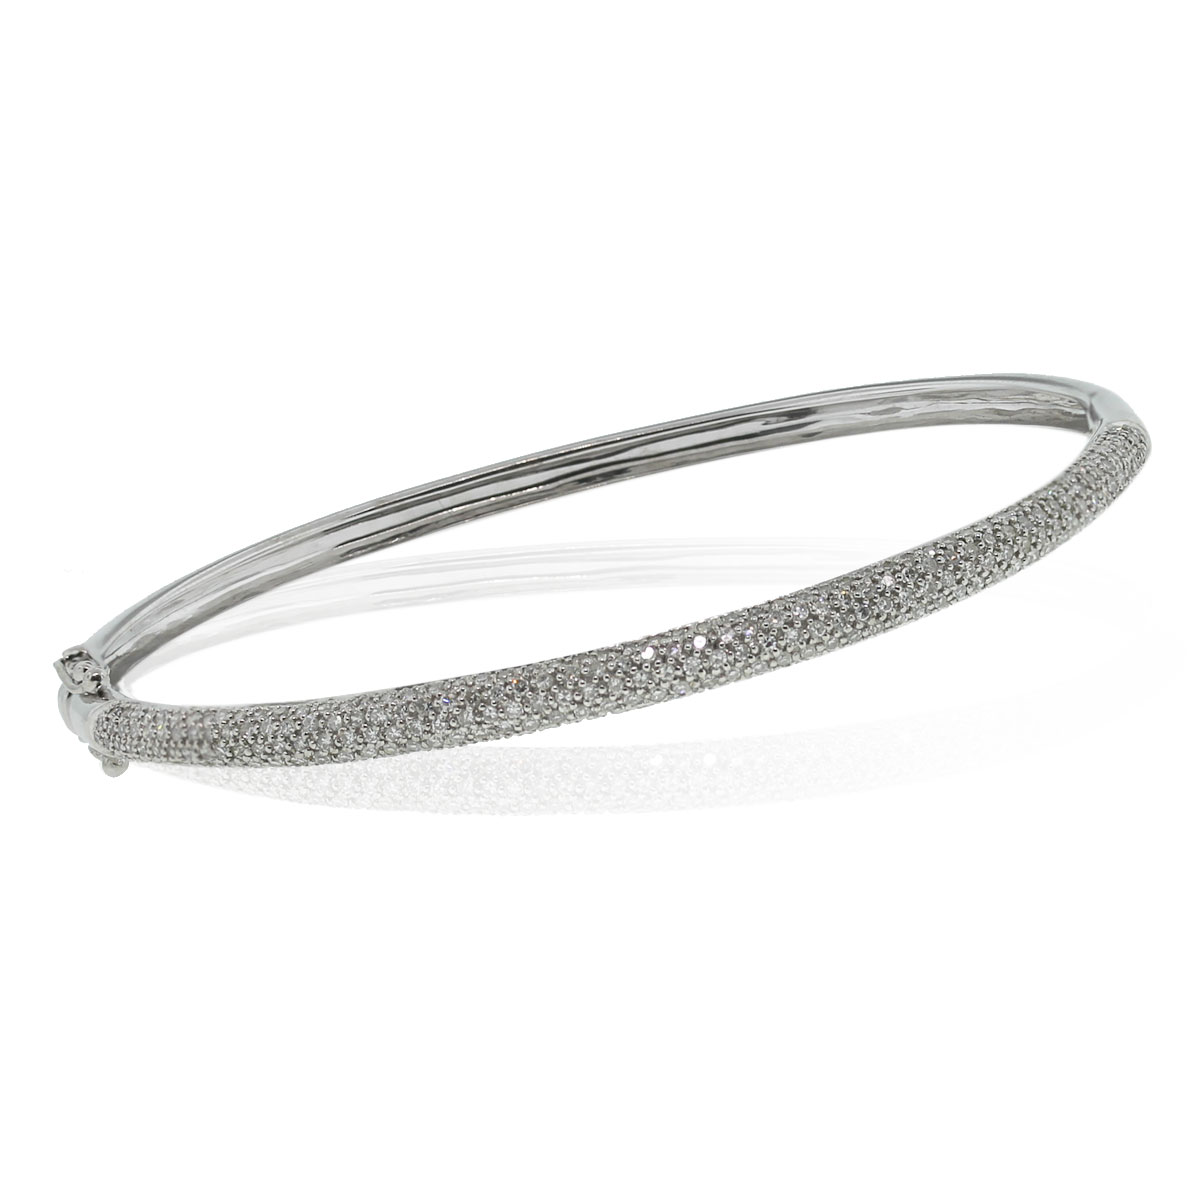 Check out this 14kt White Gold Diamond Bangle Bracelet!